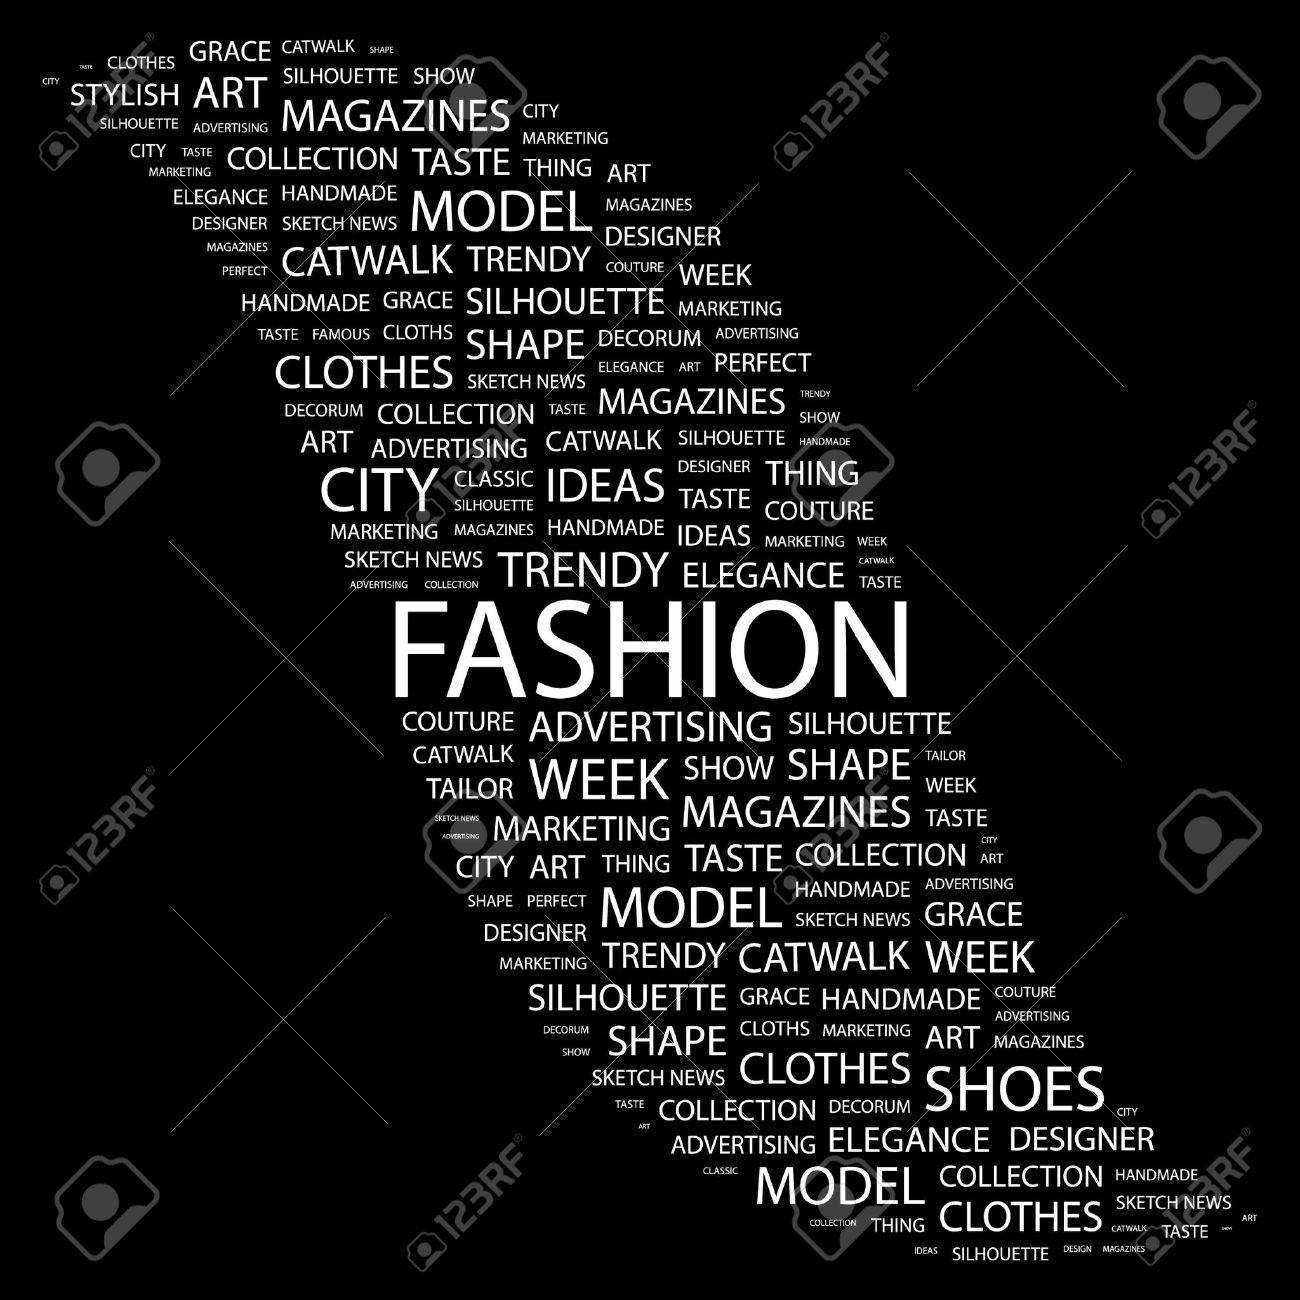 Collage fashion backgrounds black and white